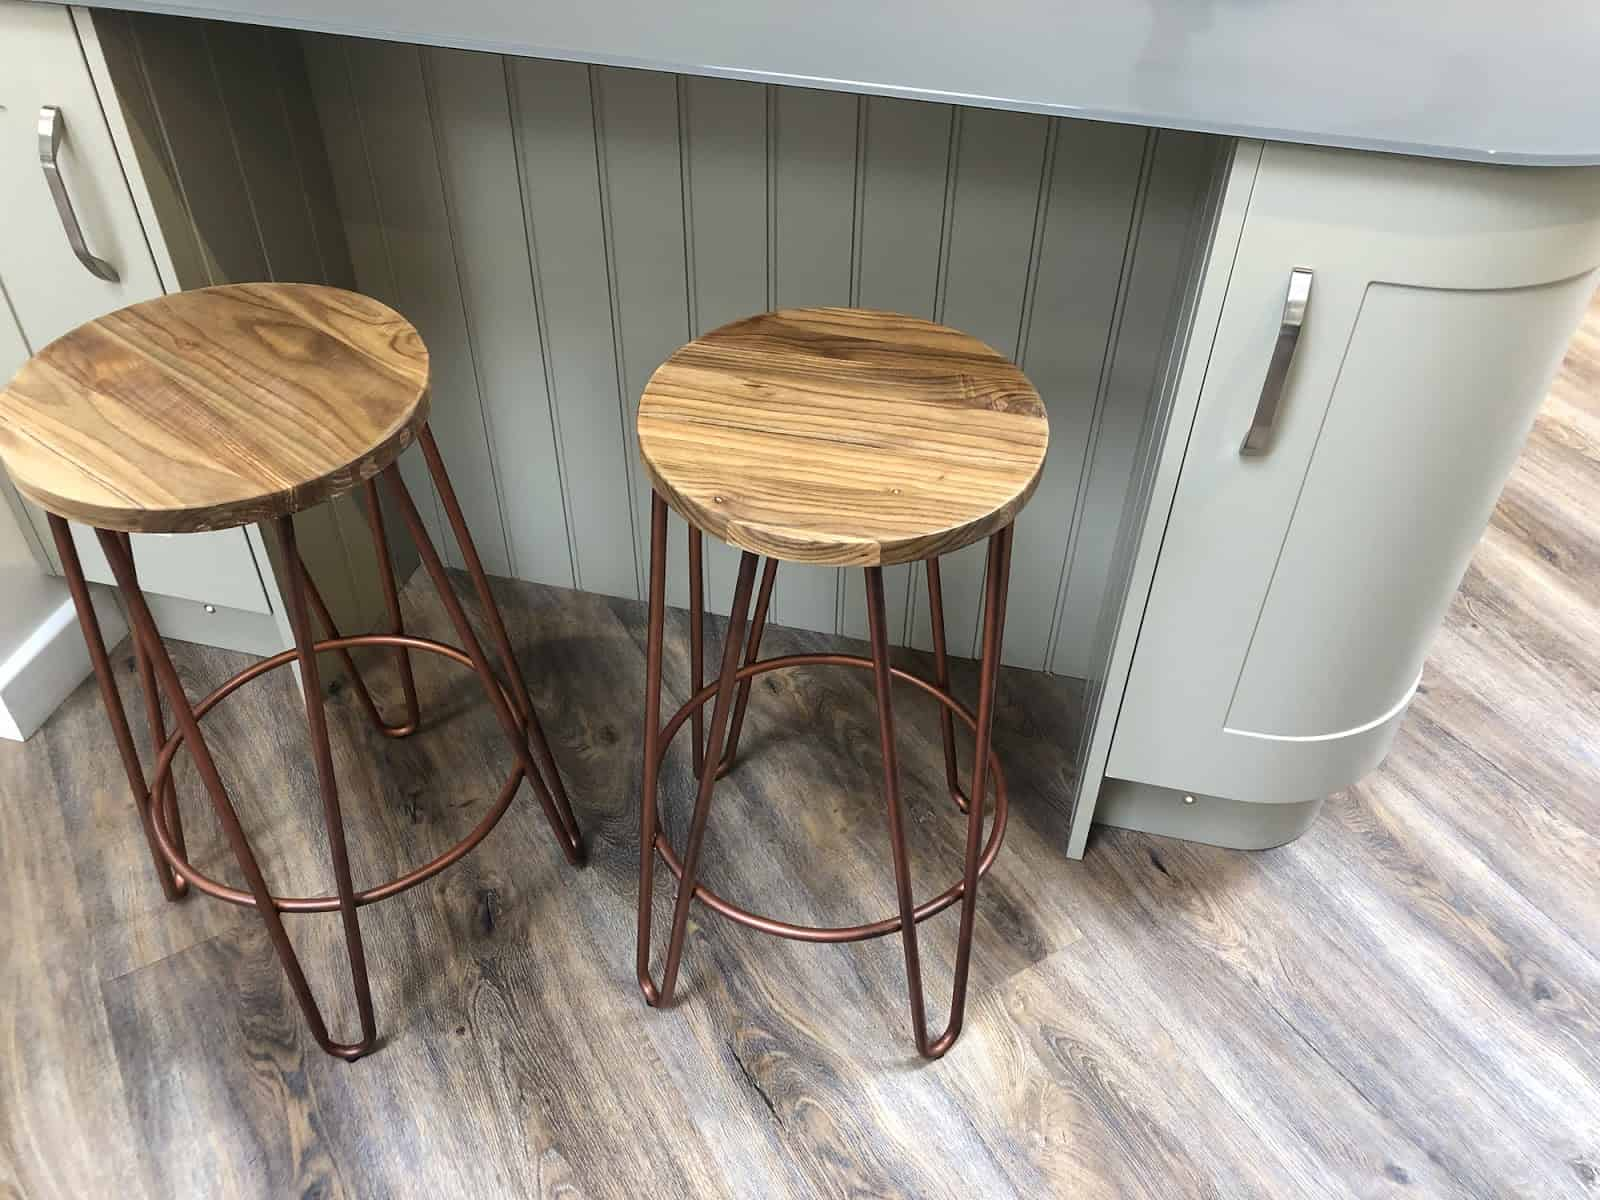 Photo of curved kitchen floor cabinets painted duck egg blue, breakfast bar / kitchen island tongue and groove cladding timber, grey composite corian worktop countertop, oak wood stools with copper coloured metal legs on dark oak effect laminate floors